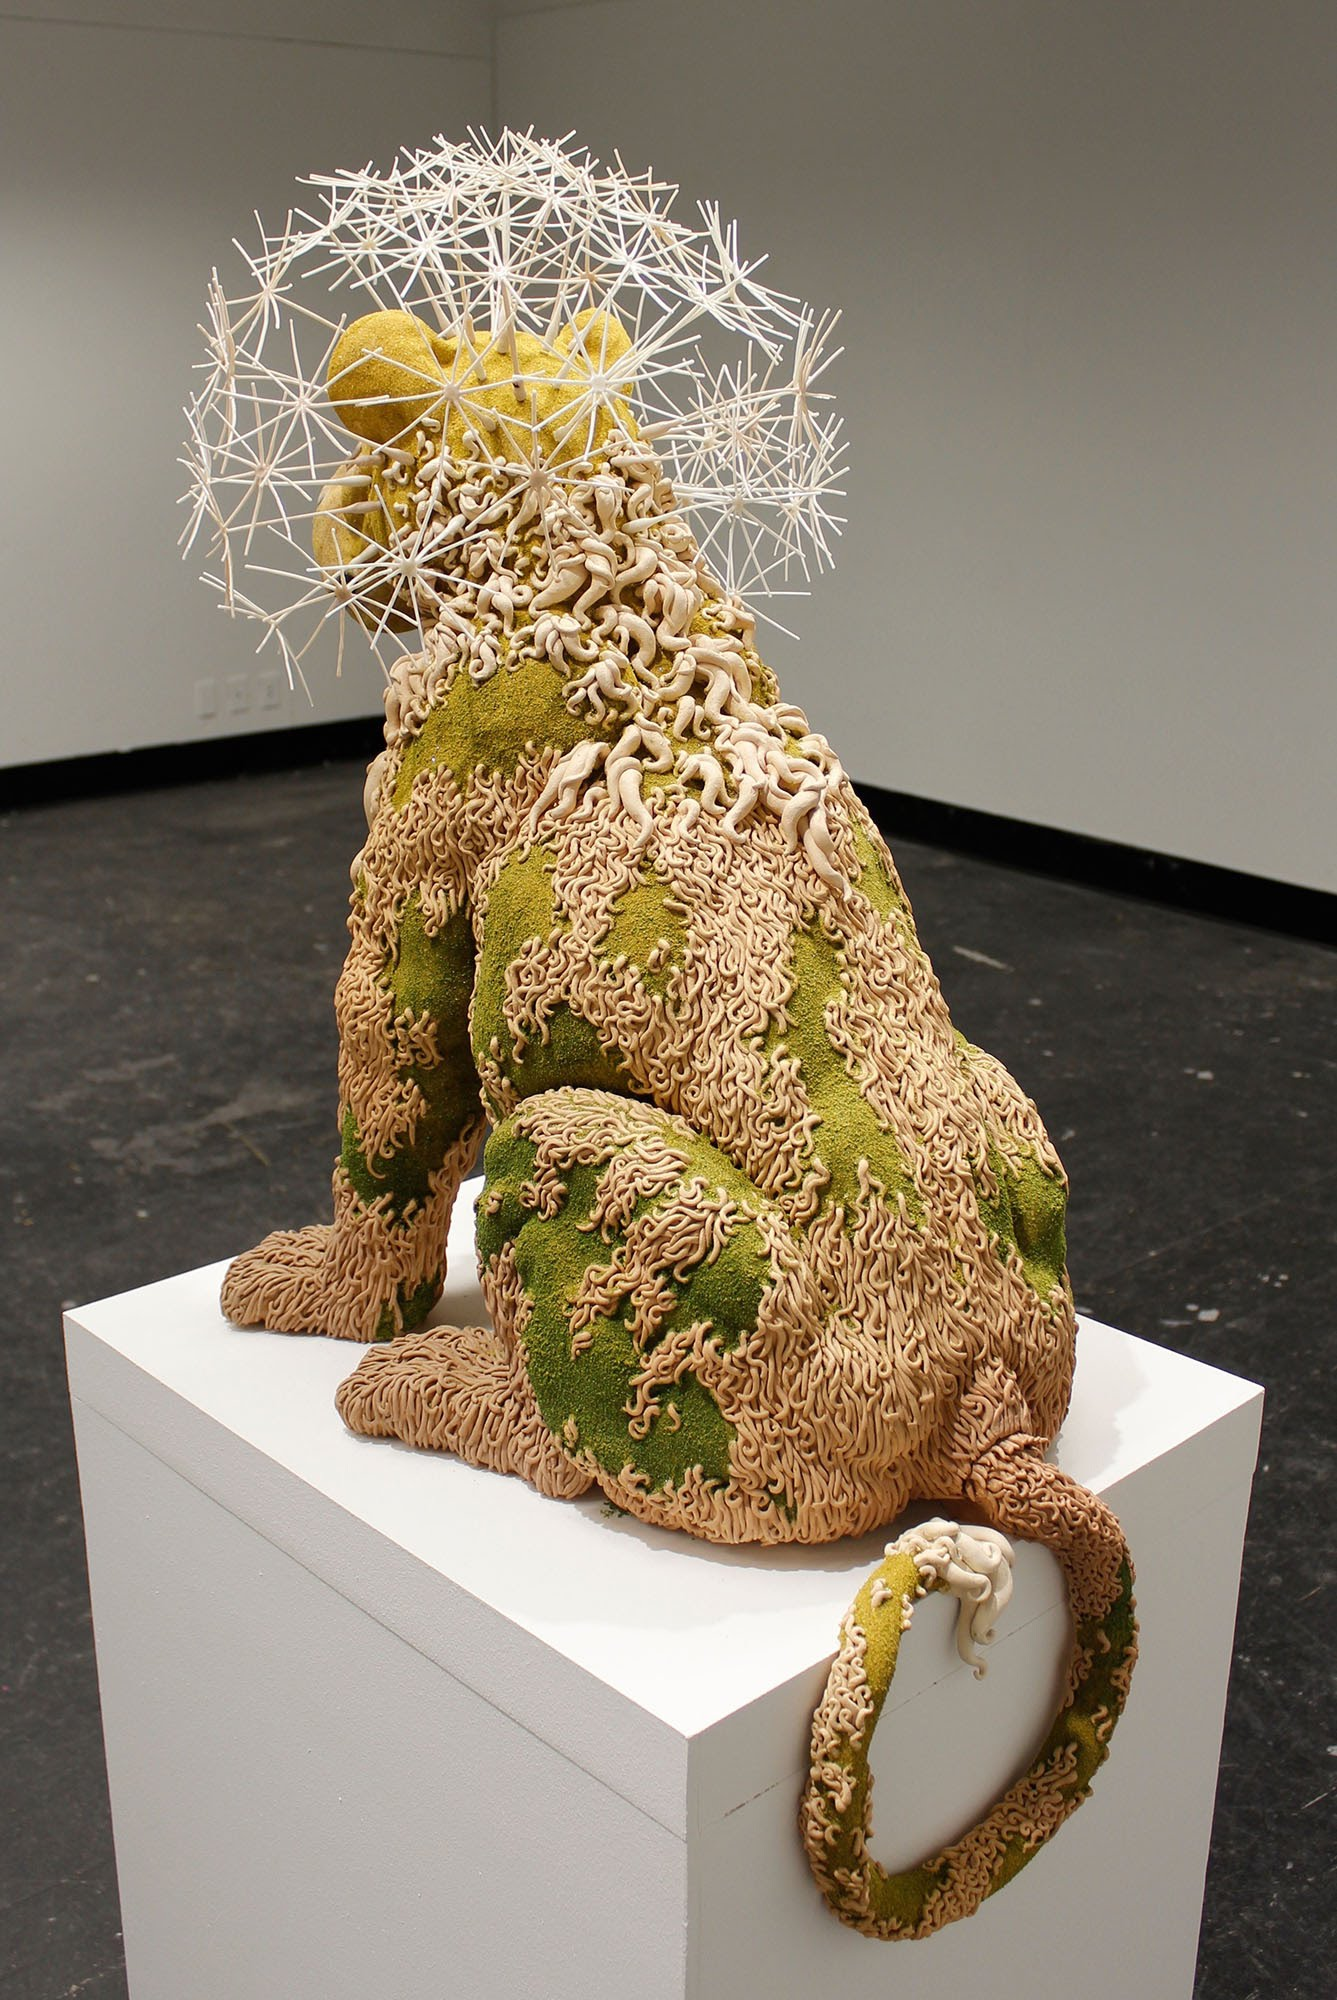 back view of lion sculpture by Suzanne Head